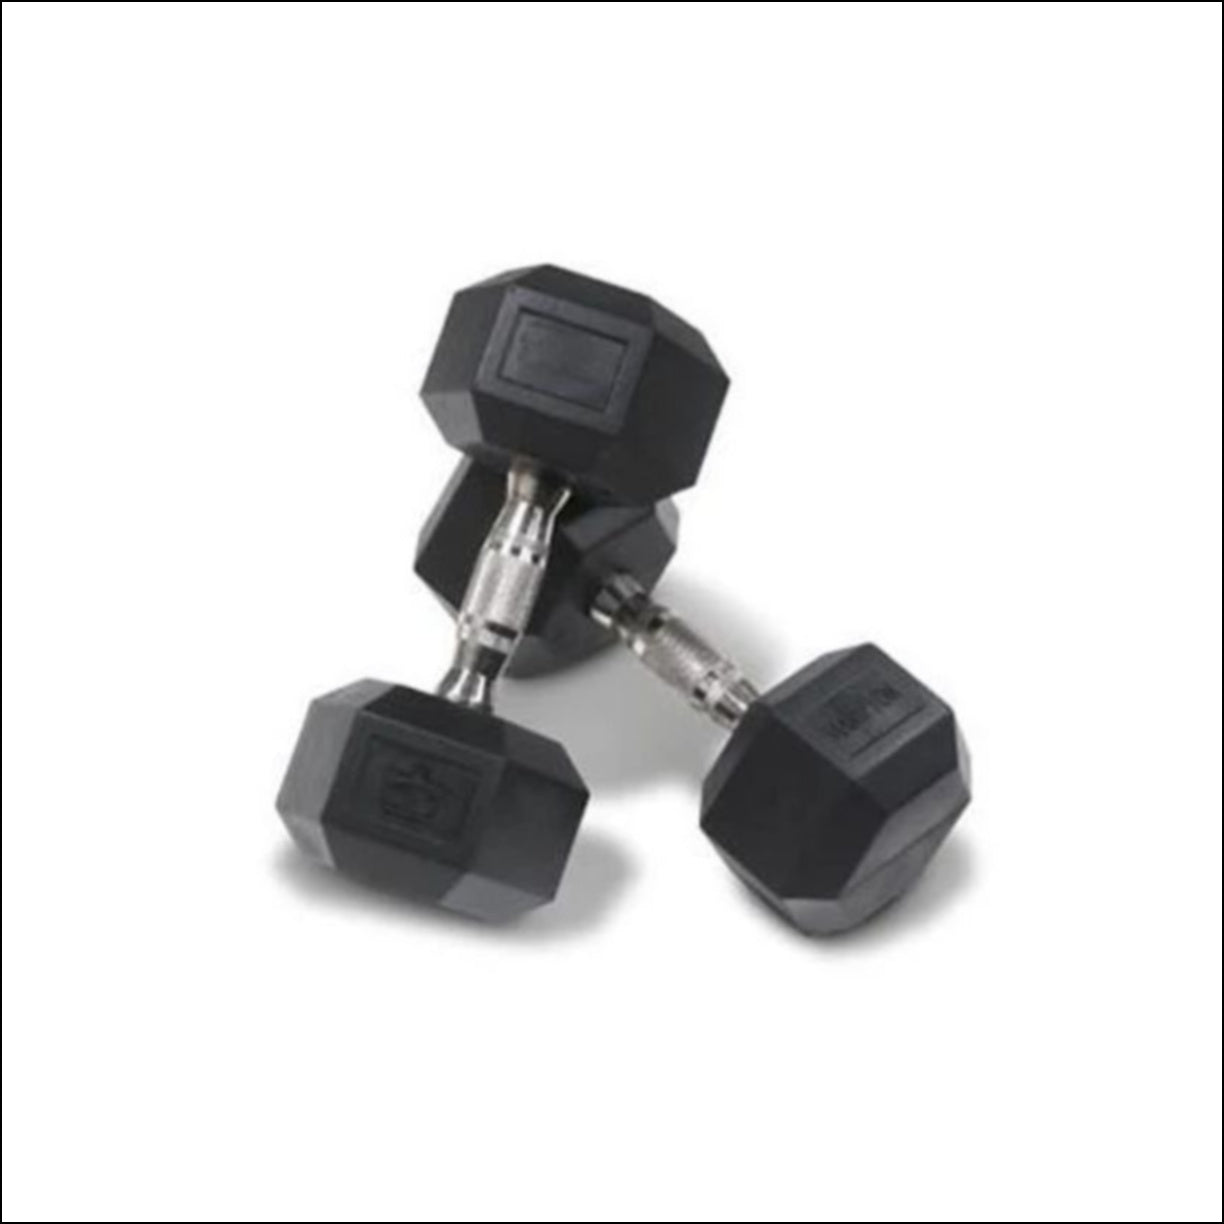 PAIR OF 6-KG RUBBER HEX DUMBBELLS  Muscle Motion rubber coated hexagonal dumbbells with ergonomic handles are designed for increased comfort and improved durability. The rubber coating reduces noise and improves the lifecycle of the product (other finishes such as chrome and cast iron are subject to chipping and rust). Rubber coated dumbbells are also kinder on floor surfaces. The hexagonal shaped ends are designed to prevent the dumbbell from rolling on the floor or dumbbell rack.